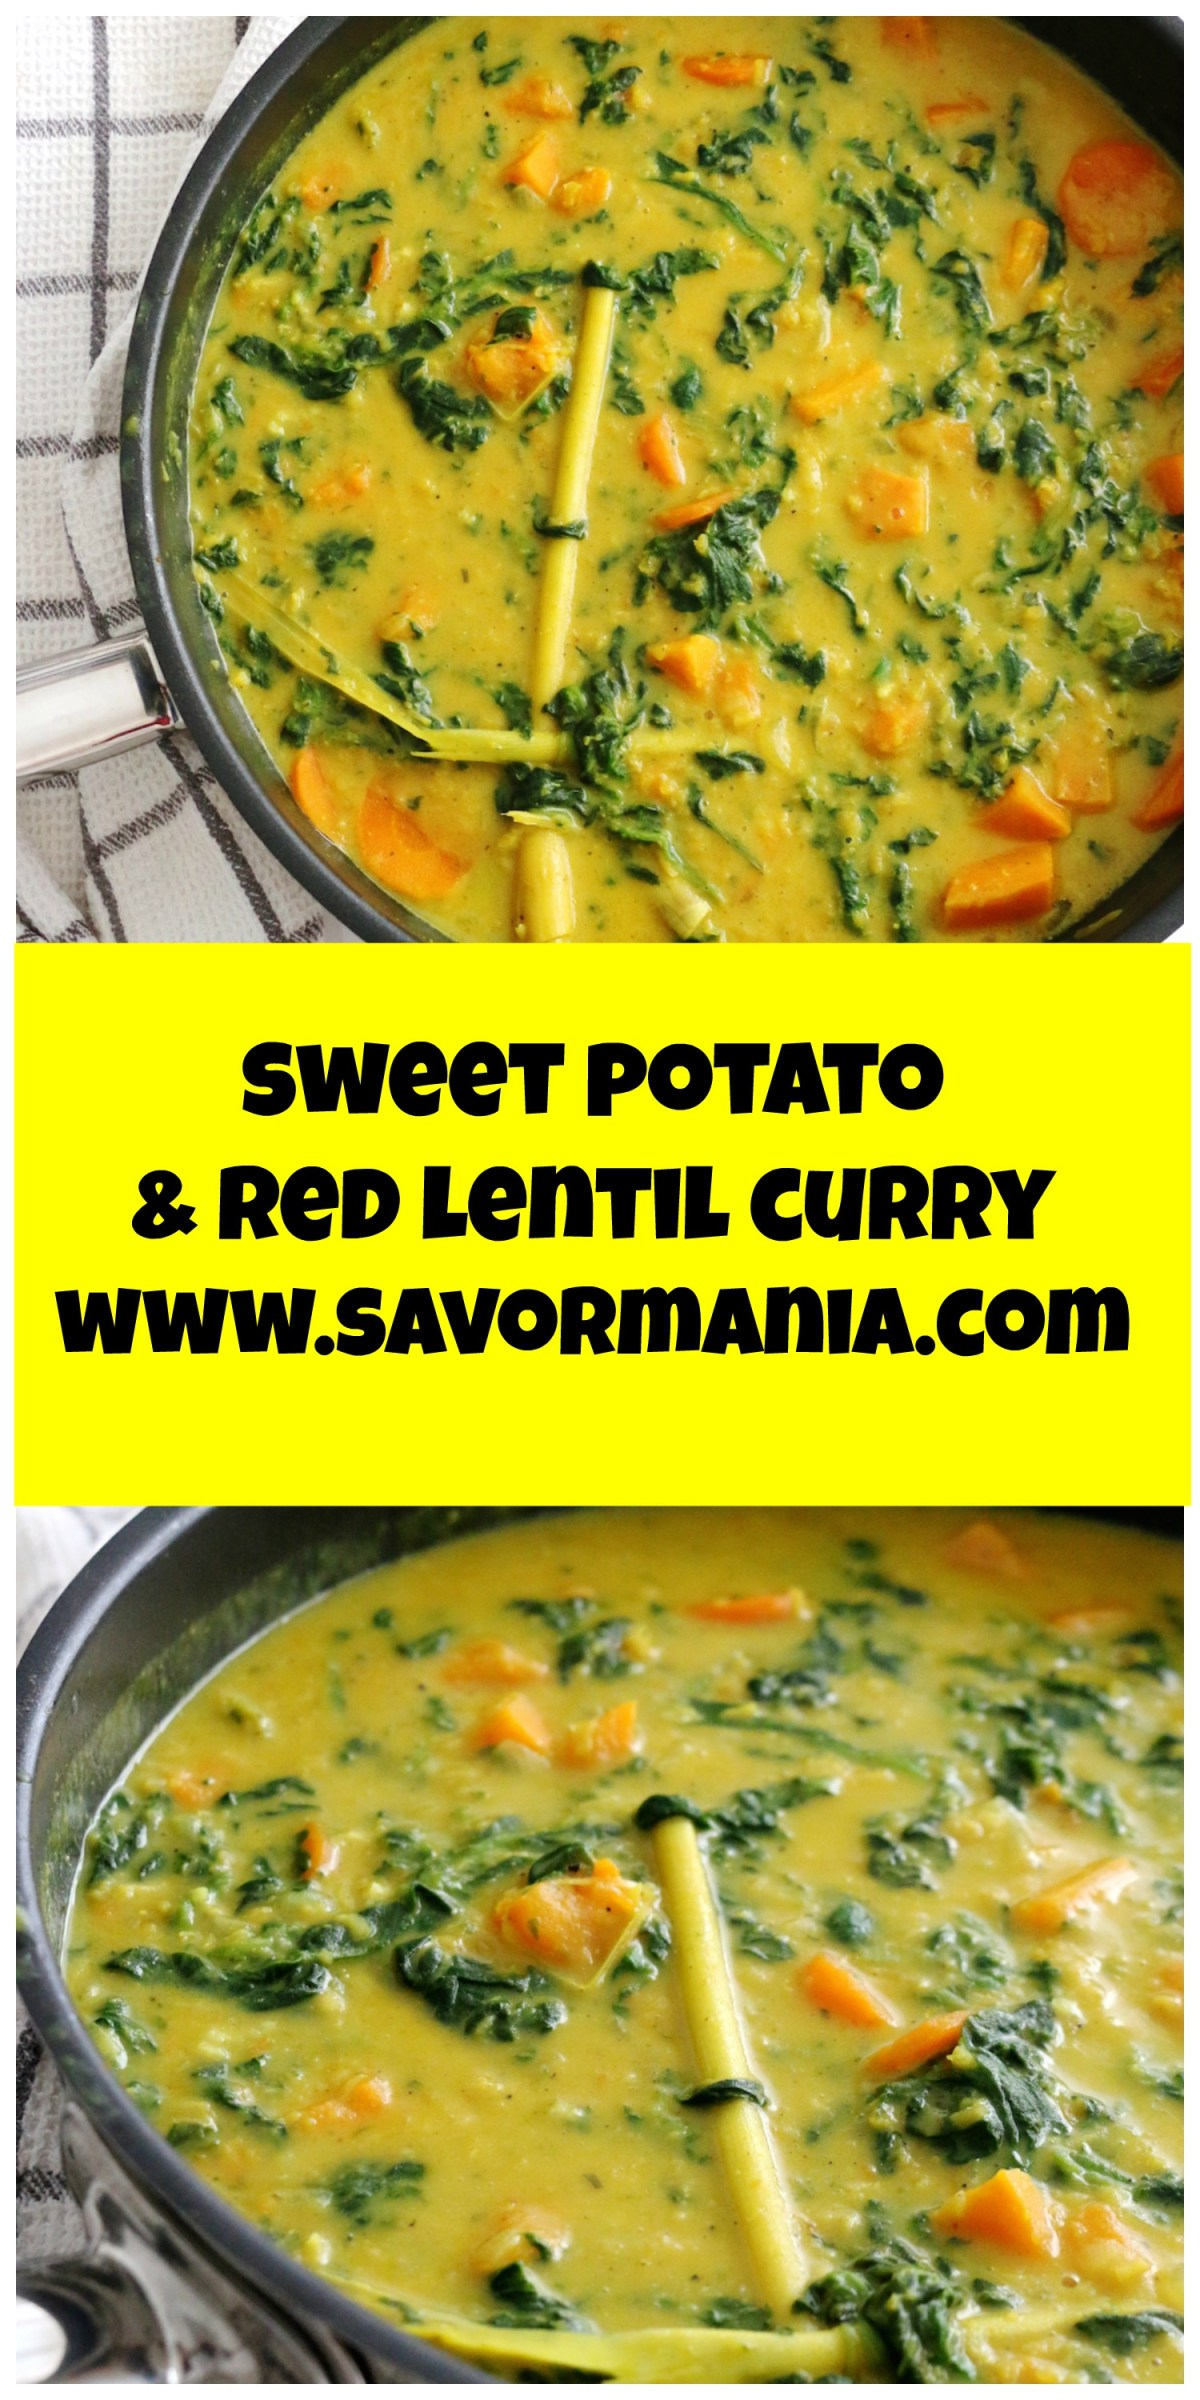 sweet potato and red lentil coconut curry   www.savormania.com